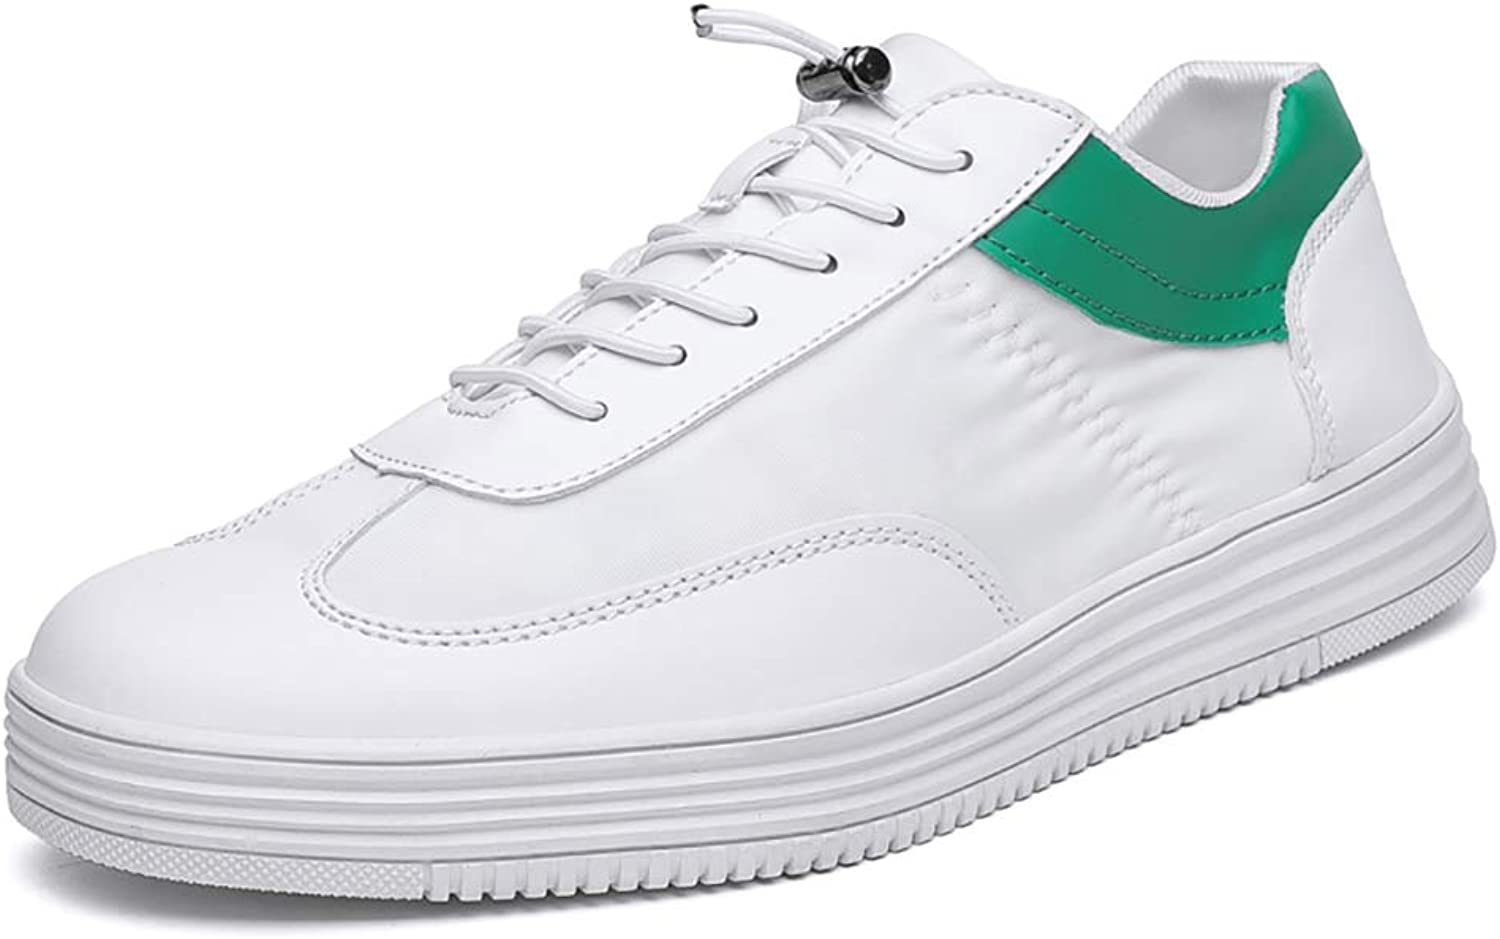 ZYFA Casual shoes Casual shoes leather sports white shoes flat with rubber outsole wear-resistant anti-skid shoes (color   C, Size   44)